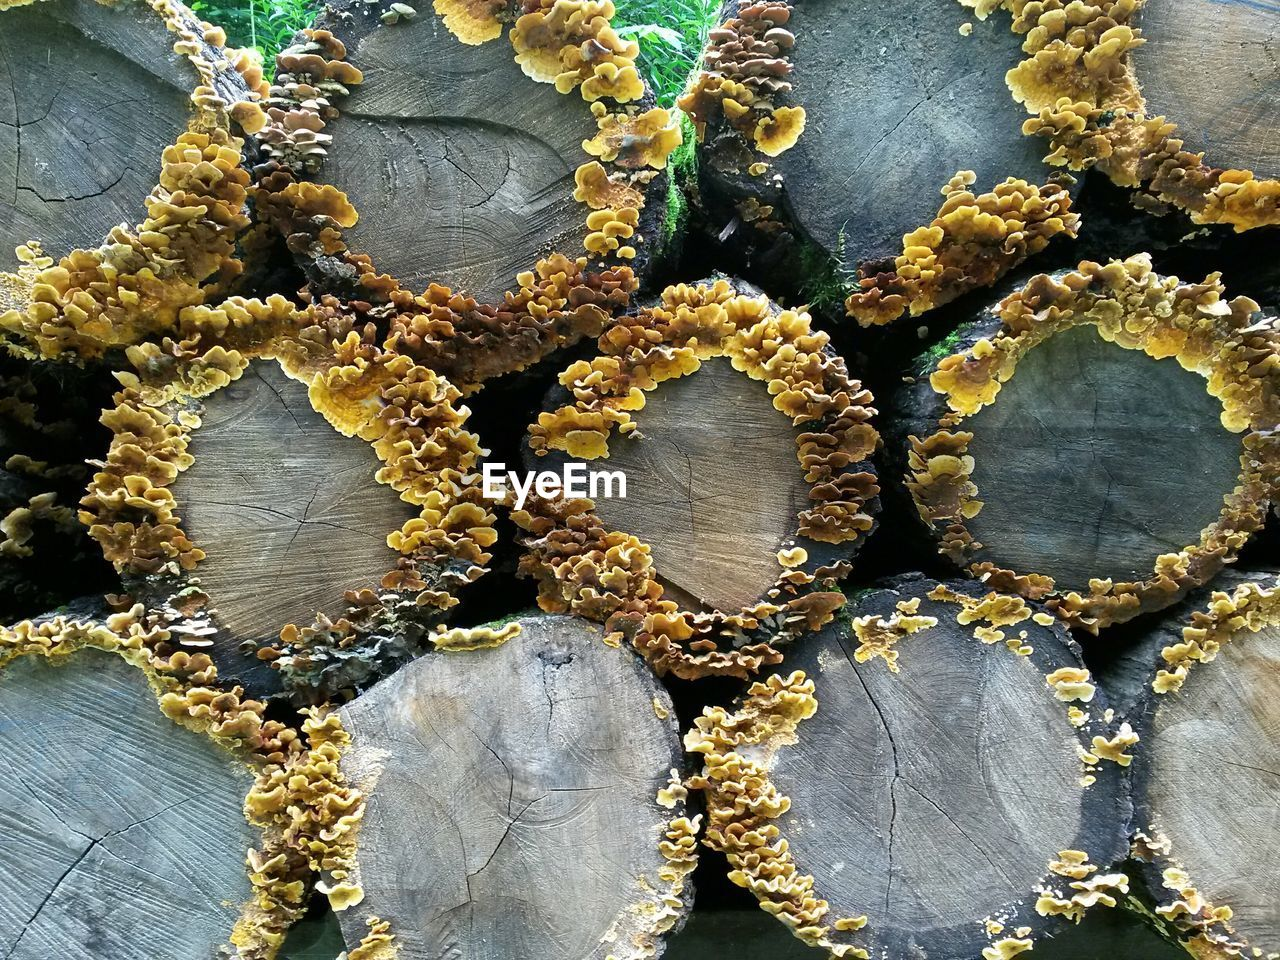 Full Frame Shot Of Logs With Fungus